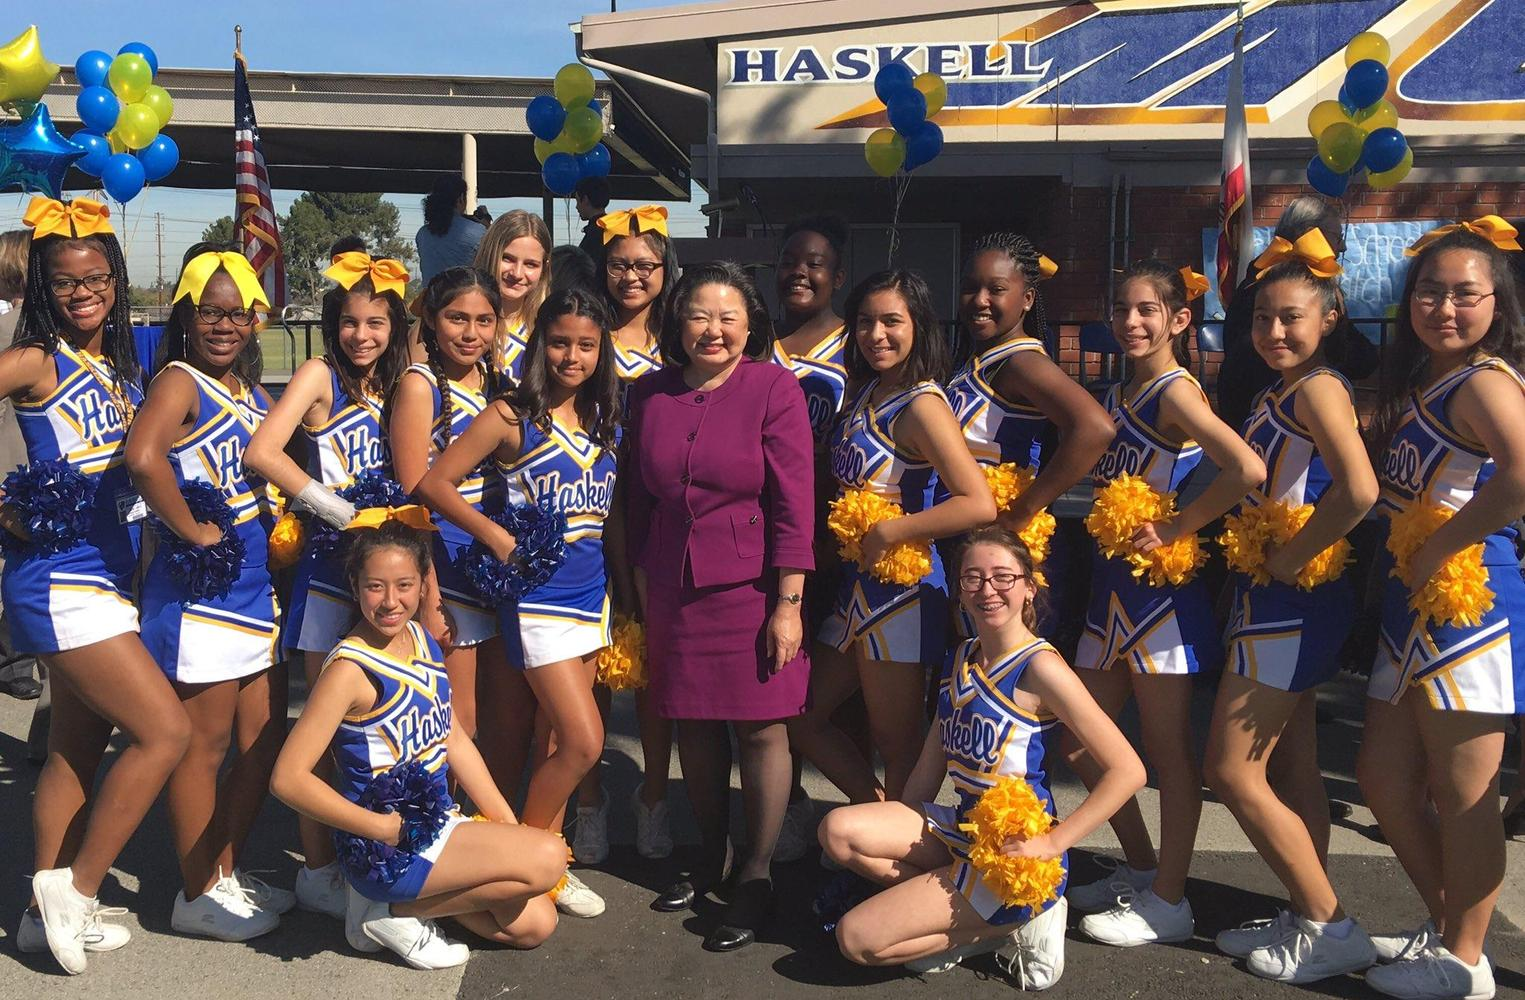 Haskell Cheerleaders and Dr. Sieu